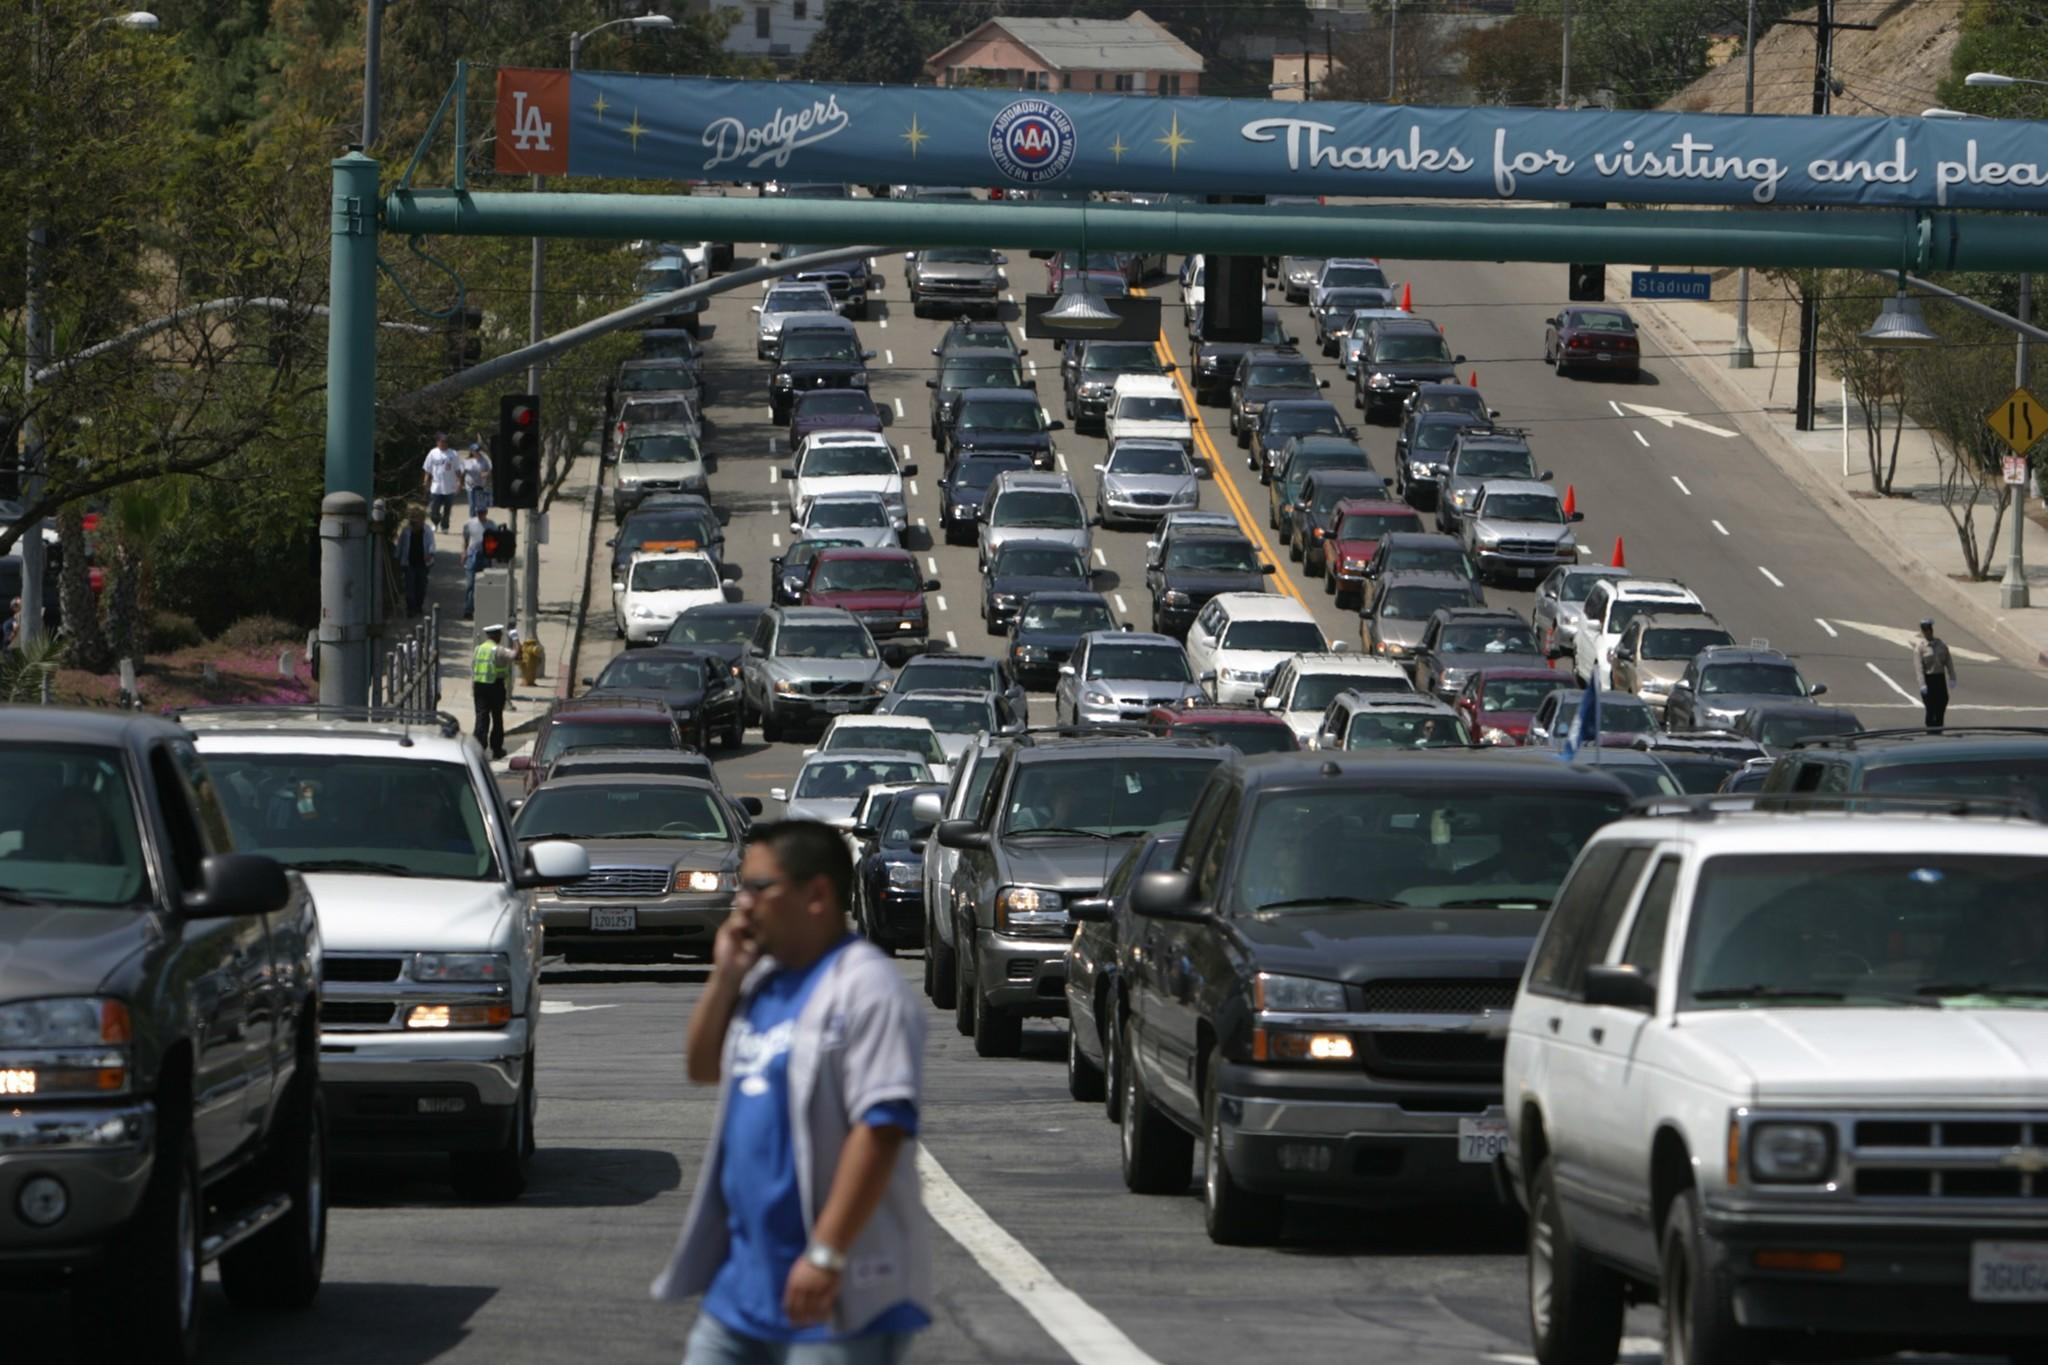 The Dodgers have raised the price of parking from $10 to $15 in an effort to reduce traffic to and from Dodger Stadium on game day.